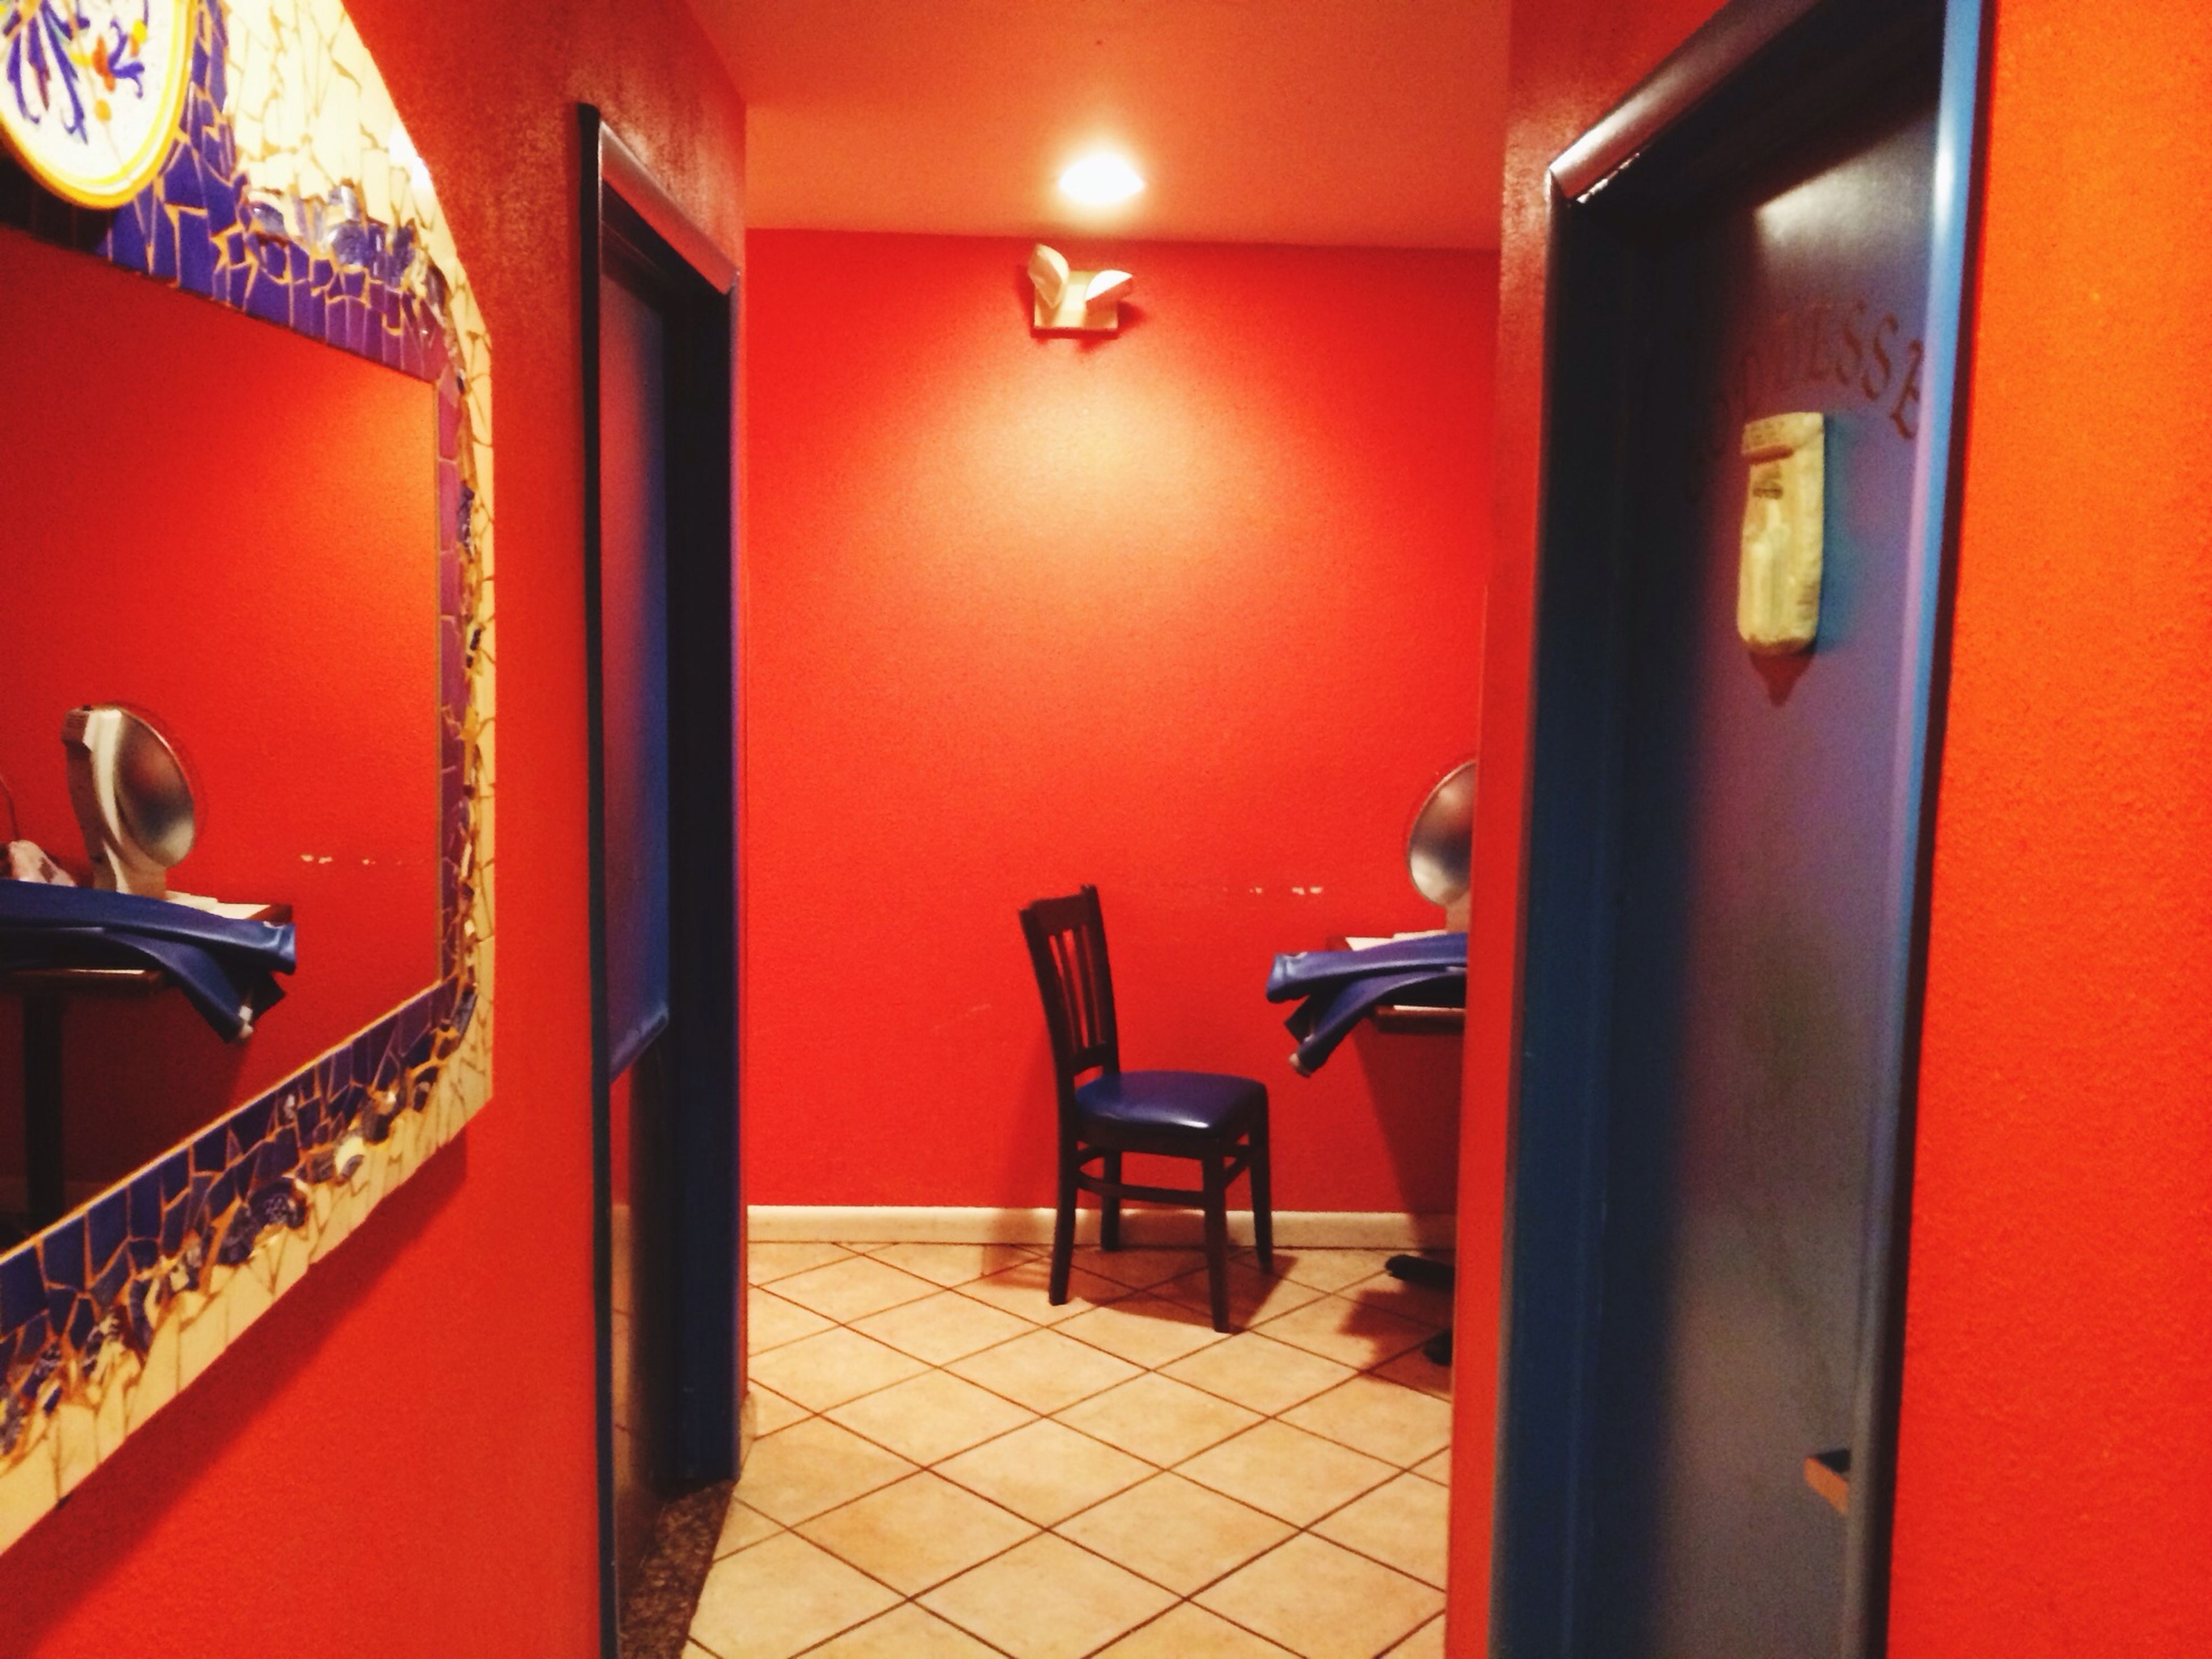 indoors, door, empty, absence, illuminated, chair, house, built structure, architecture, red, flooring, home interior, domestic room, lighting equipment, no people, tiled floor, seat, closed, furniture, wall